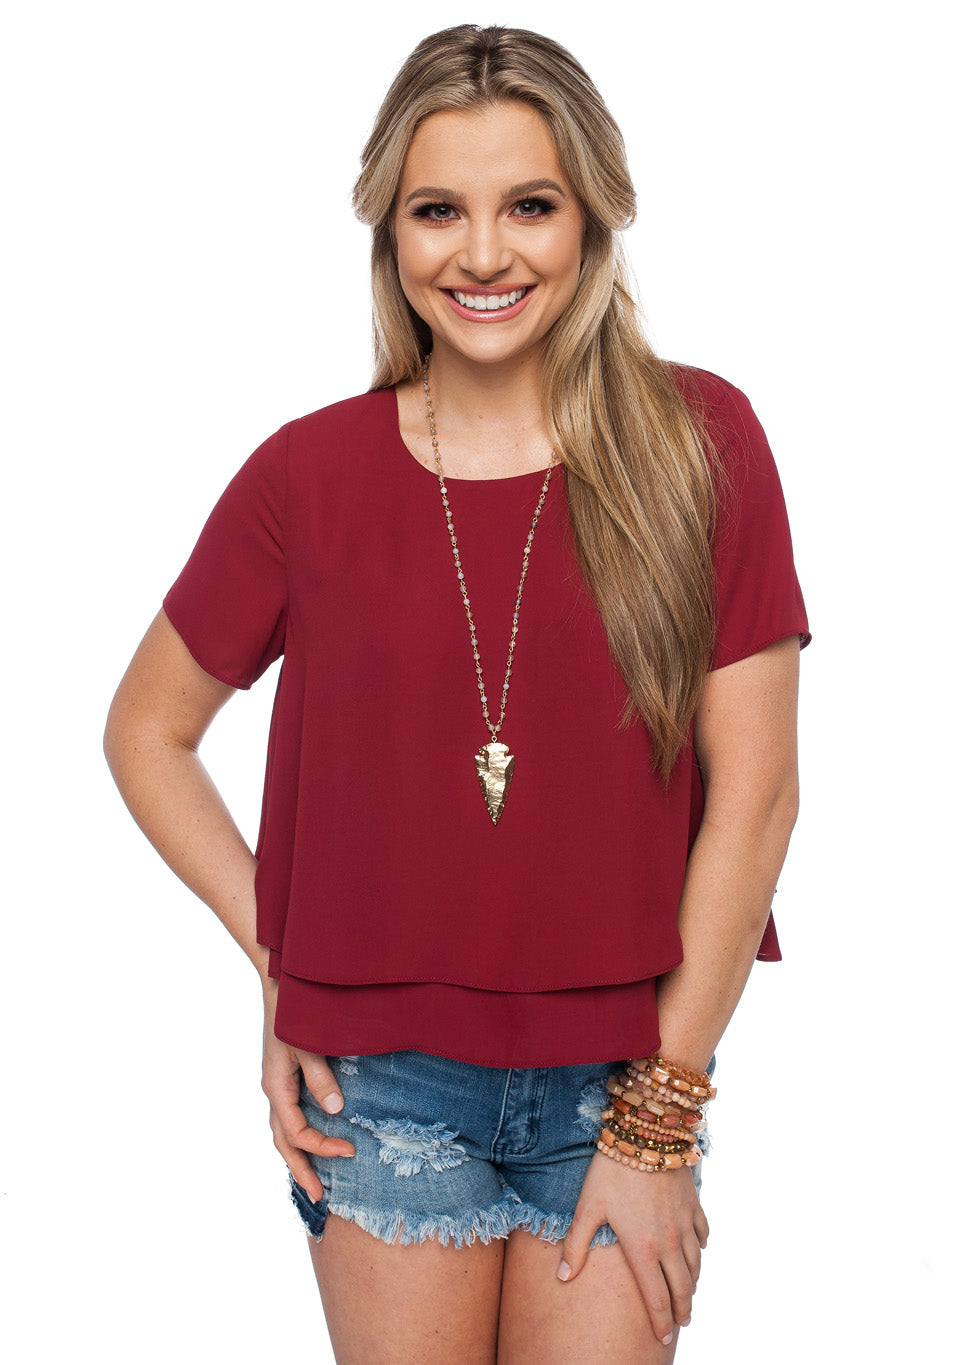 Joey Gameday Top